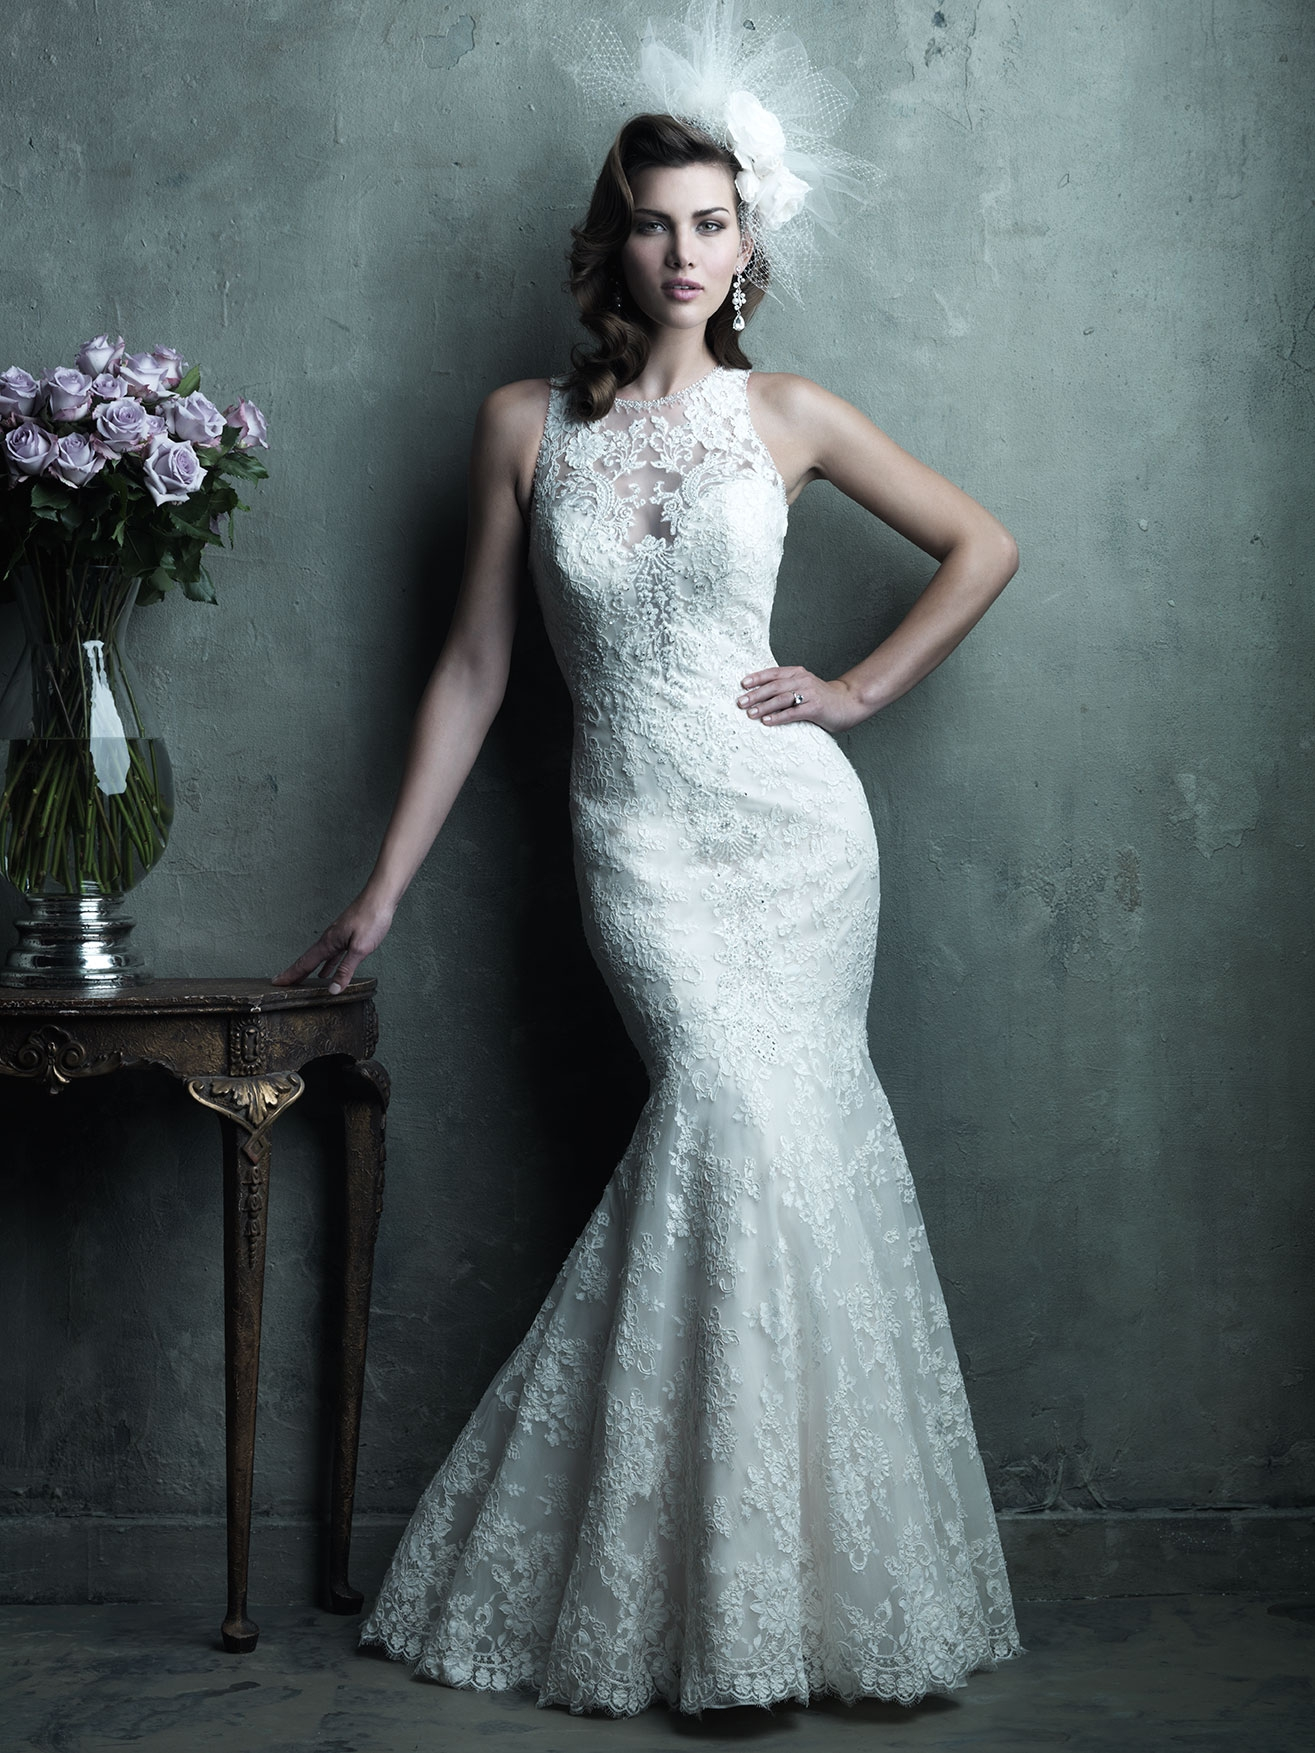 Bridal Gowns Archives - Page 48 of 49 - Petals and Promises Bridal